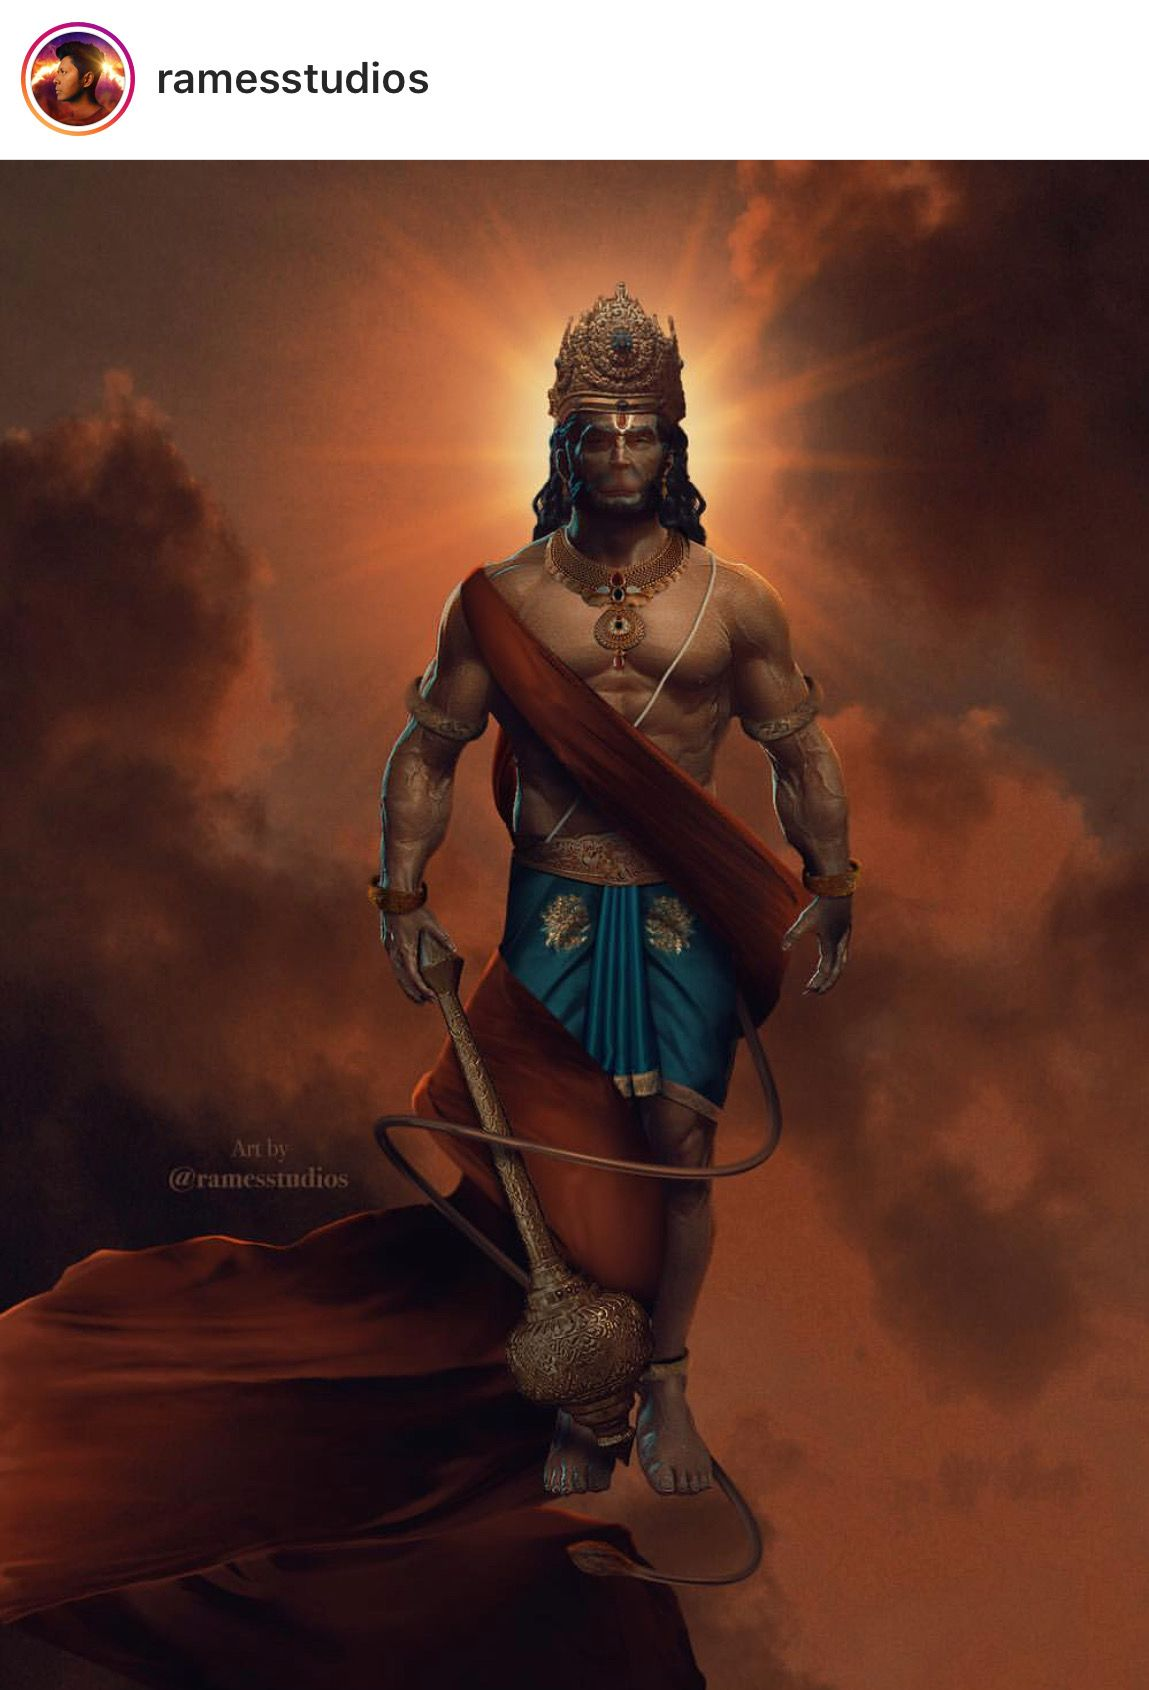 Download Hanumnaji Hd Image Wallpaper By M Akash02 Aa Free On Zedge Now Browse Millions Of Popular De In 2021 Hanuman Wallpaper Hanumanji Lord Hanuman Wallpapers